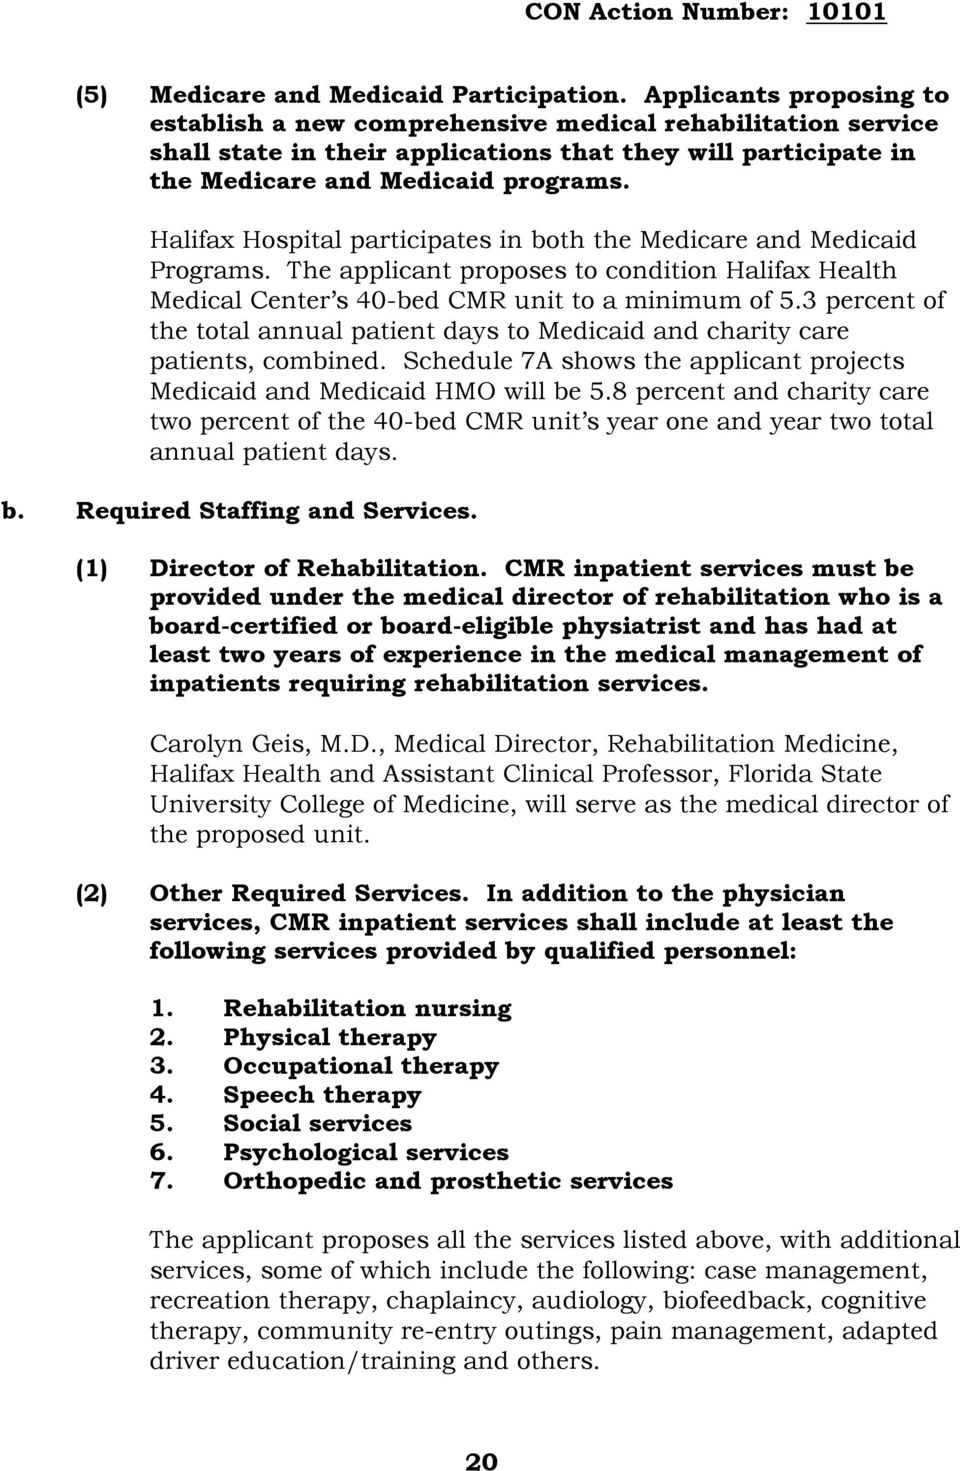 Halifax Hospital participates in both the Medicare and Medicaid Programs. The applicant proposes to condition Halifax Health Medical Center s 40-bed CMR unit to a minimum of 5.